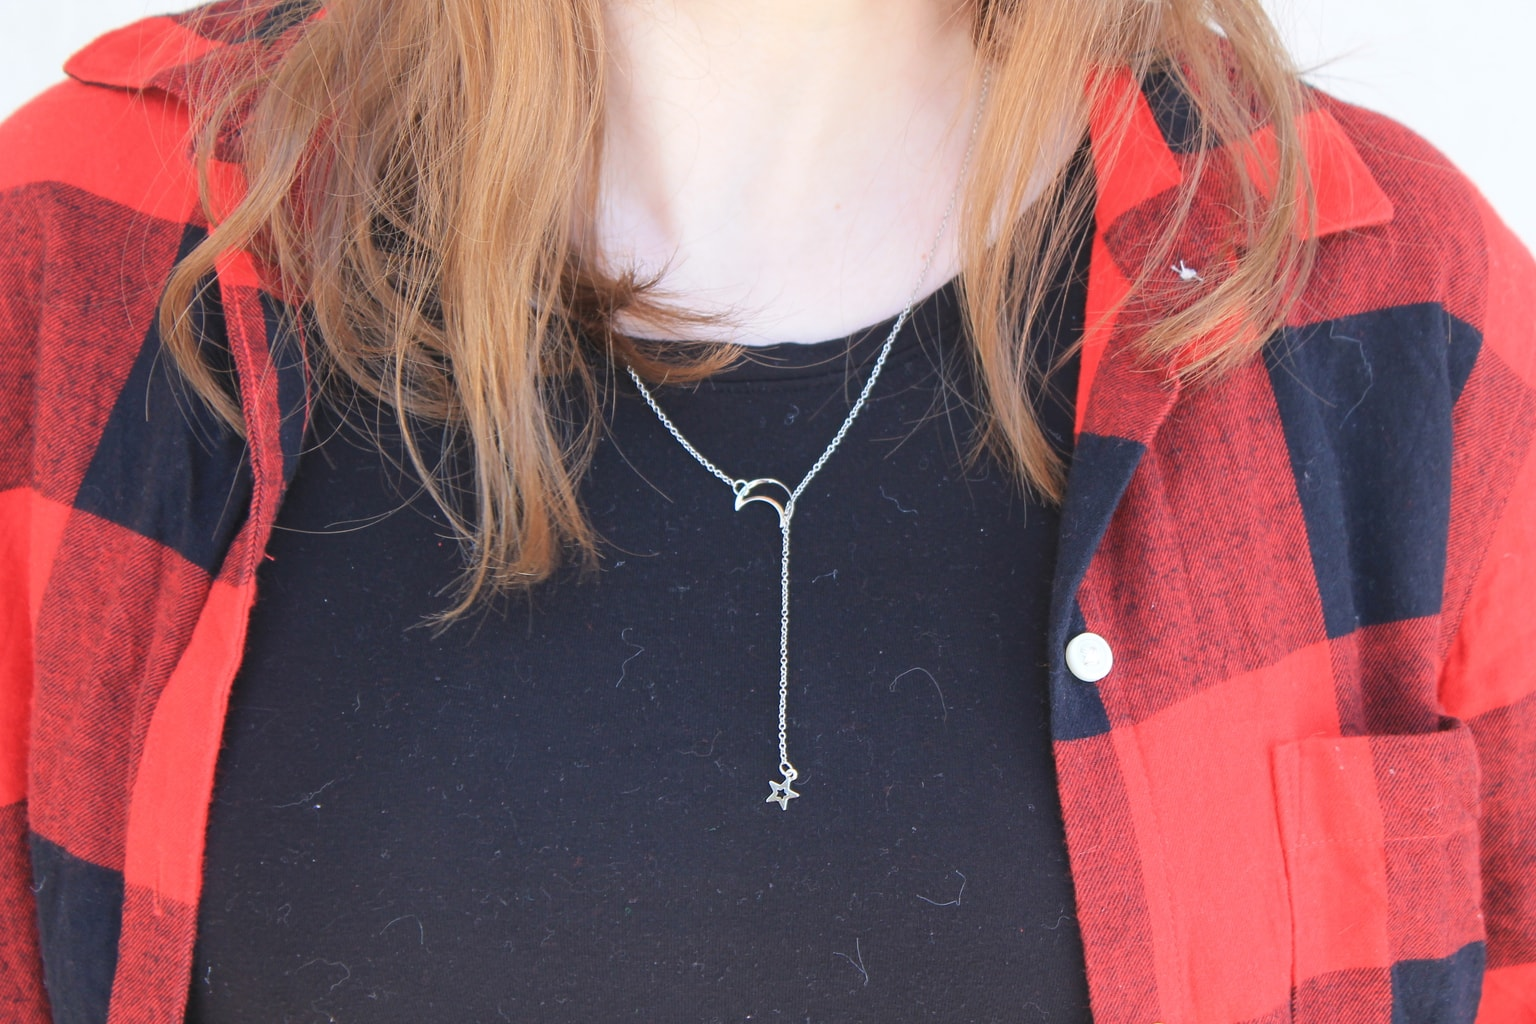 Genna's necklace is a simple lariat with a moon and star.